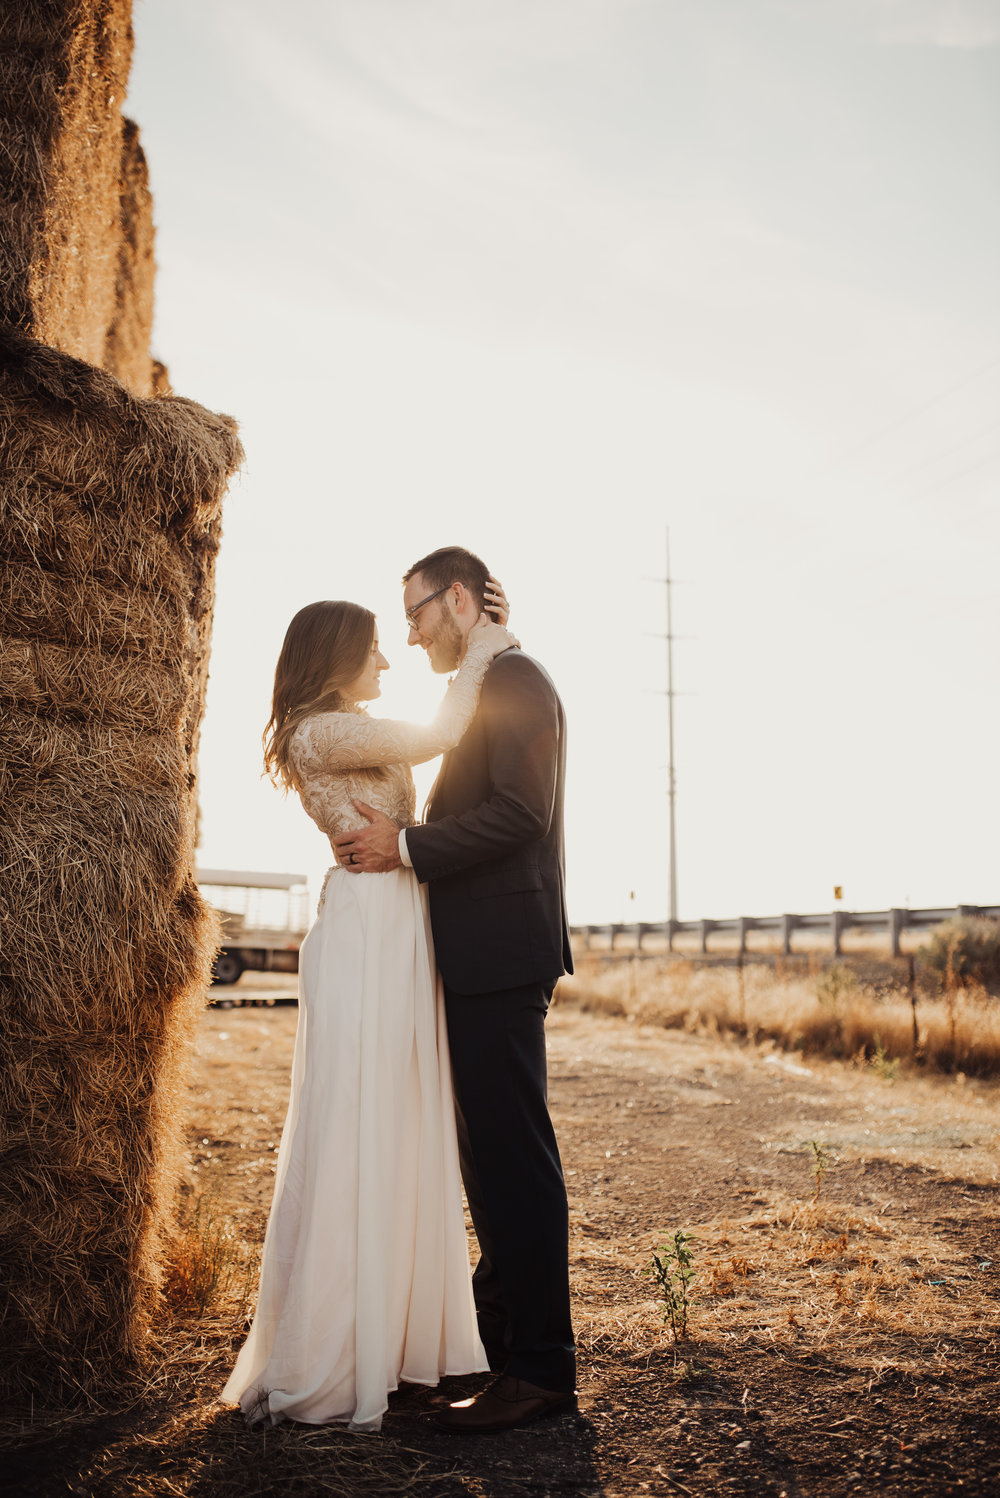 Barnyard wedding photos at sunset.jpg